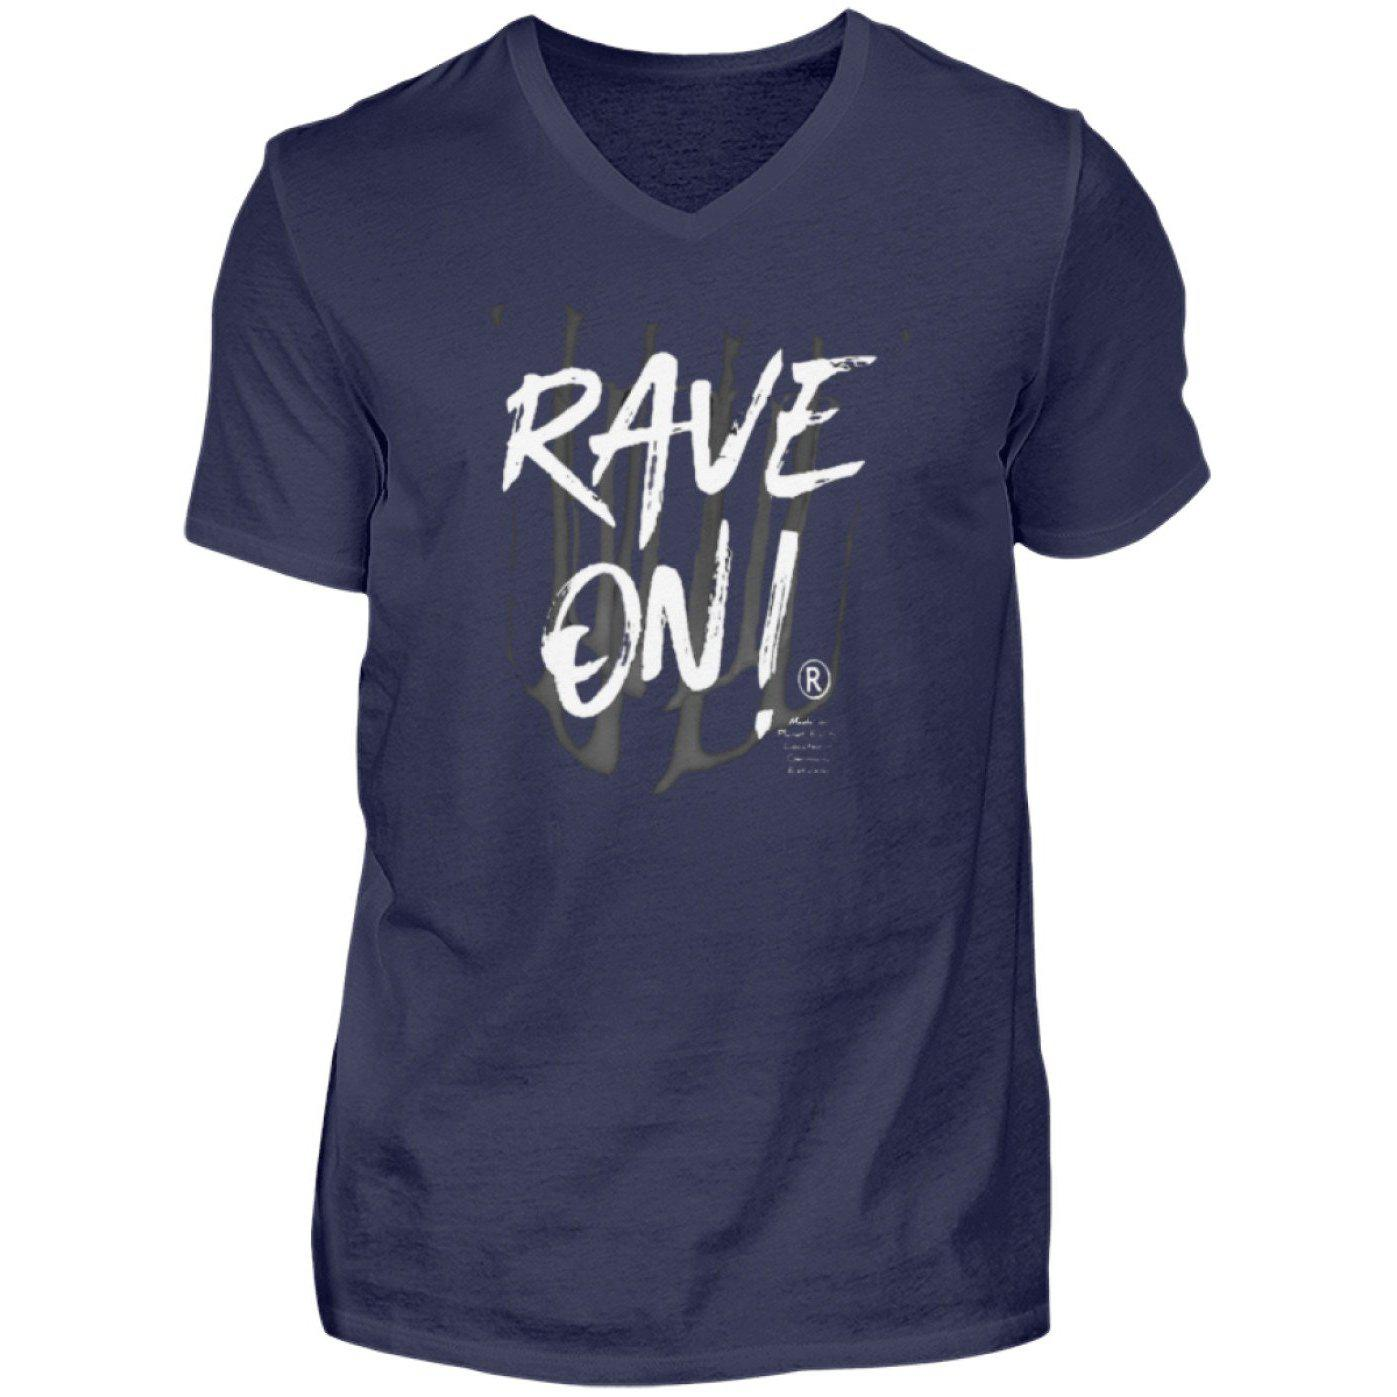 Rave On!® - Made On Planet Earth B2k20 - Herren V-Neck Shirt V-Neck Herrenshirt Navy / S - Rave On!® der Club & Techno Szene Shop für Coole Junge Mode Streetwear Style & Fashion Outfits + Sexy Festival 420 Stuff